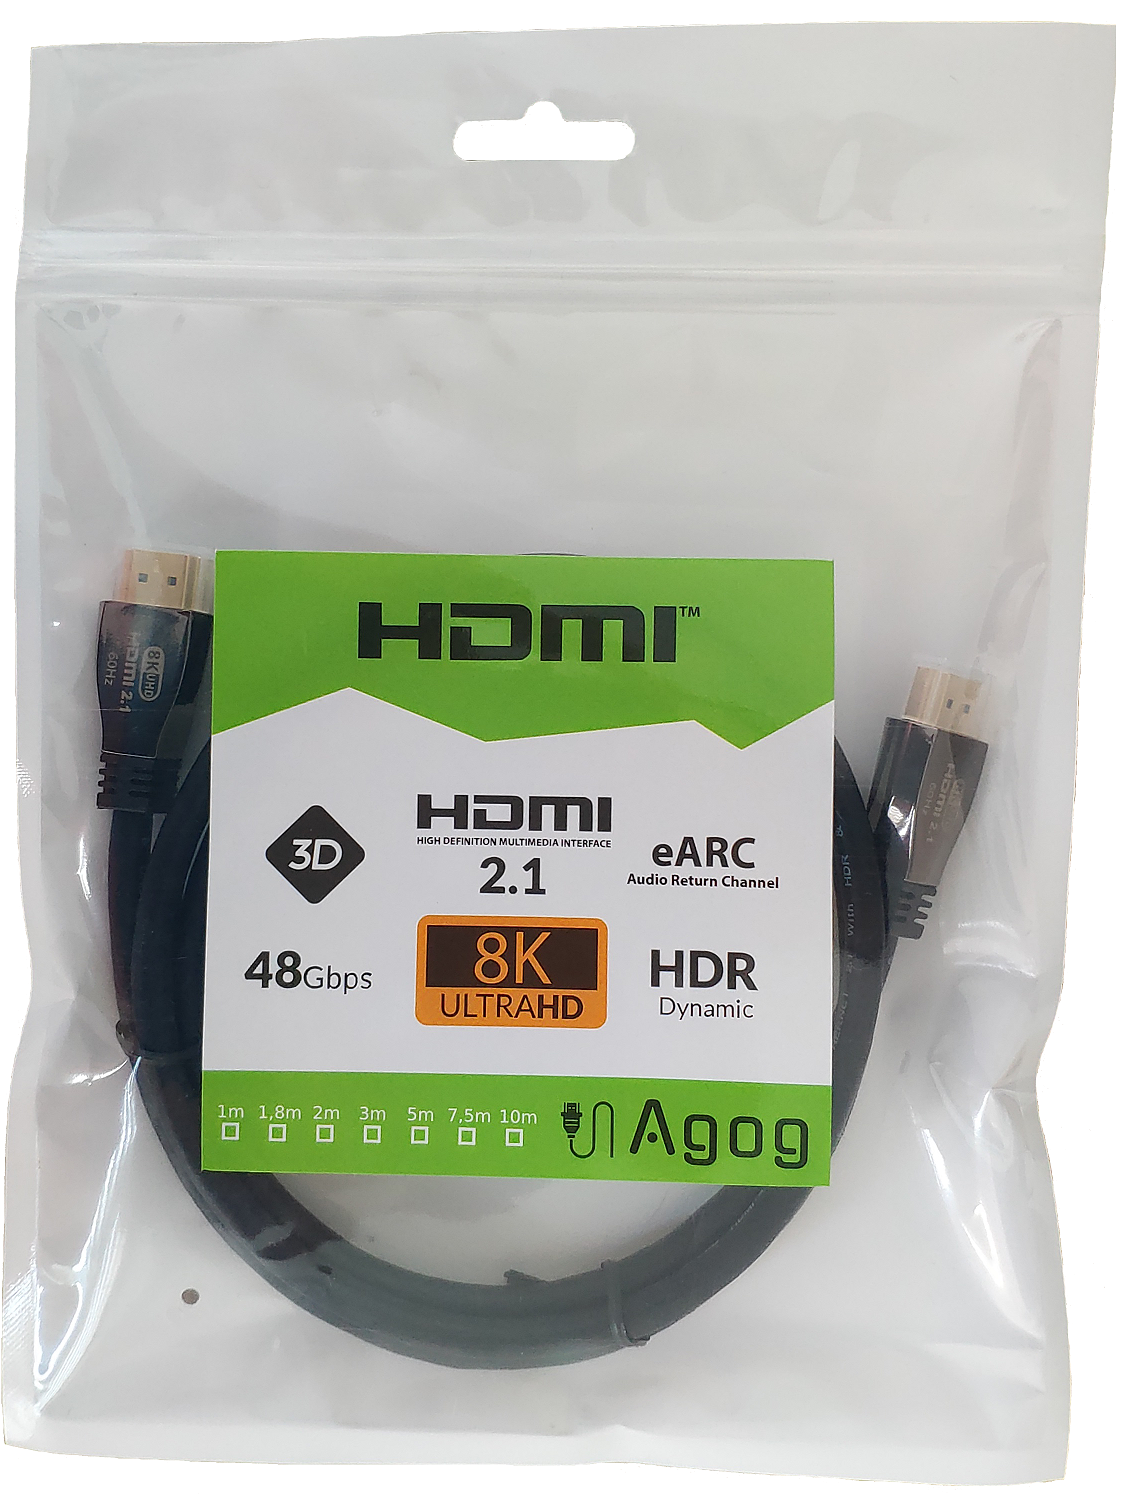 /profesjonalny kabel hdmi 2.1 8k ultra high speed Agog